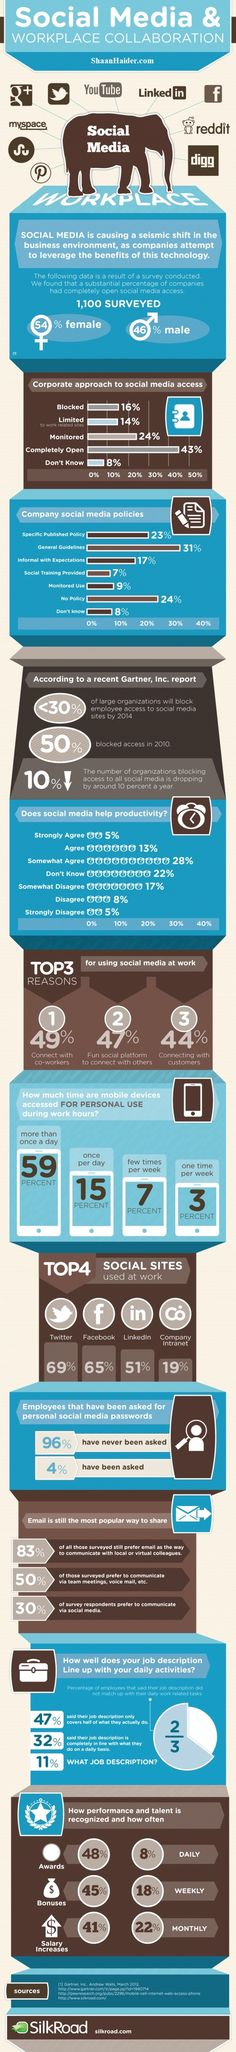 "SOCIAL MEDIA - ""An infographic breaking down the effect of social media in the workplace, and the different restrictions put in place."""